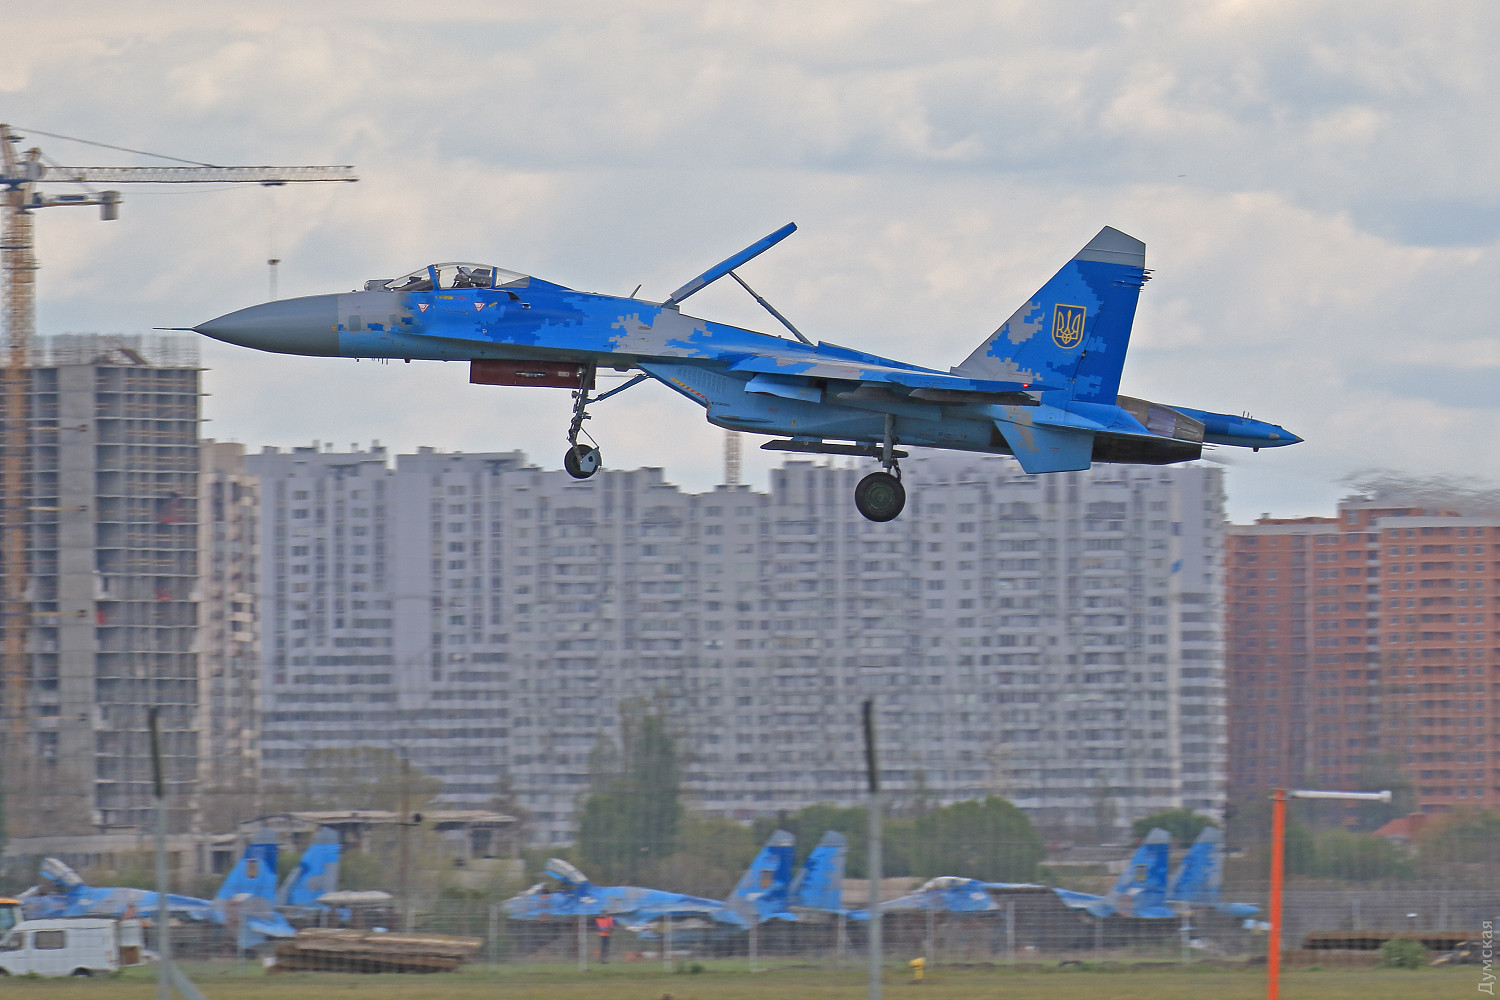 http://forums.airforce.ru/attachments/matchast/98818d1588059295-22333.jpg/